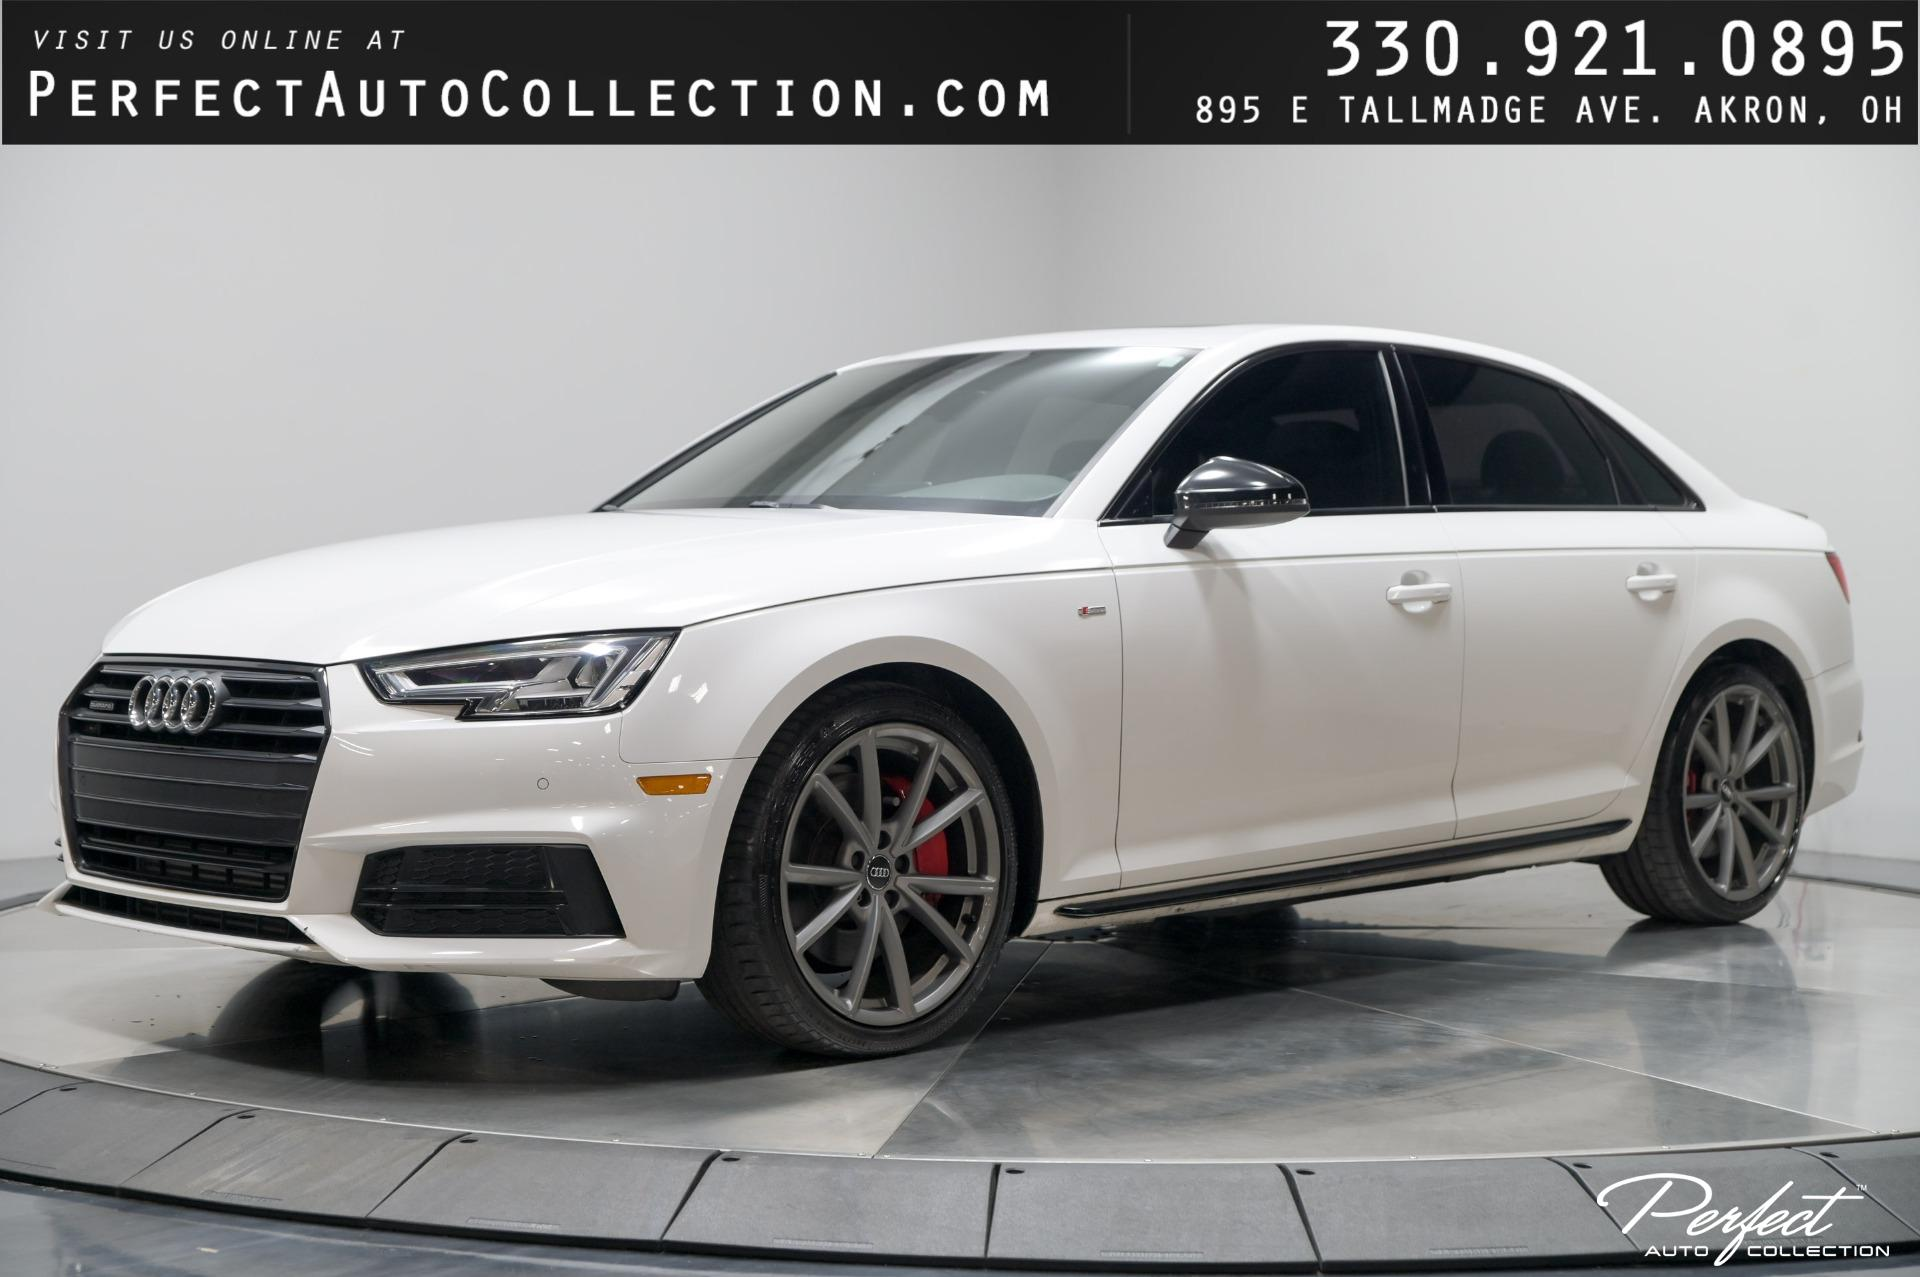 Used 2018 Audi A4 2.0T quattro Premium Plus for sale $31,995 at Perfect Auto Collection in Akron OH 44310 1